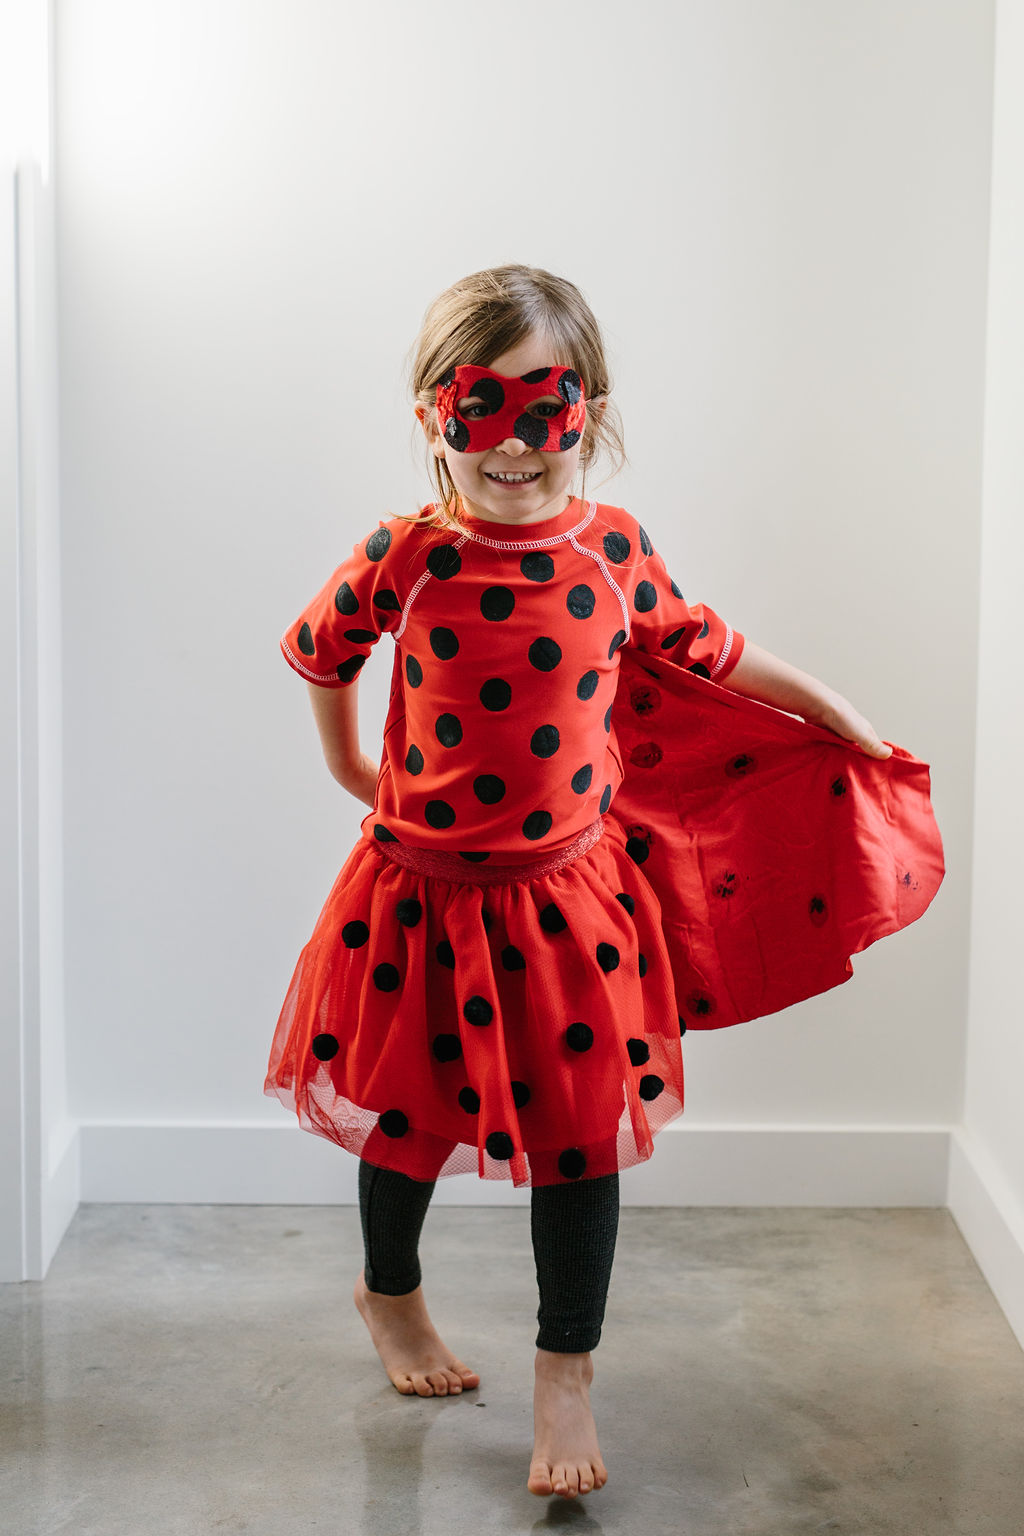 A child in a miraculous ladybug costume